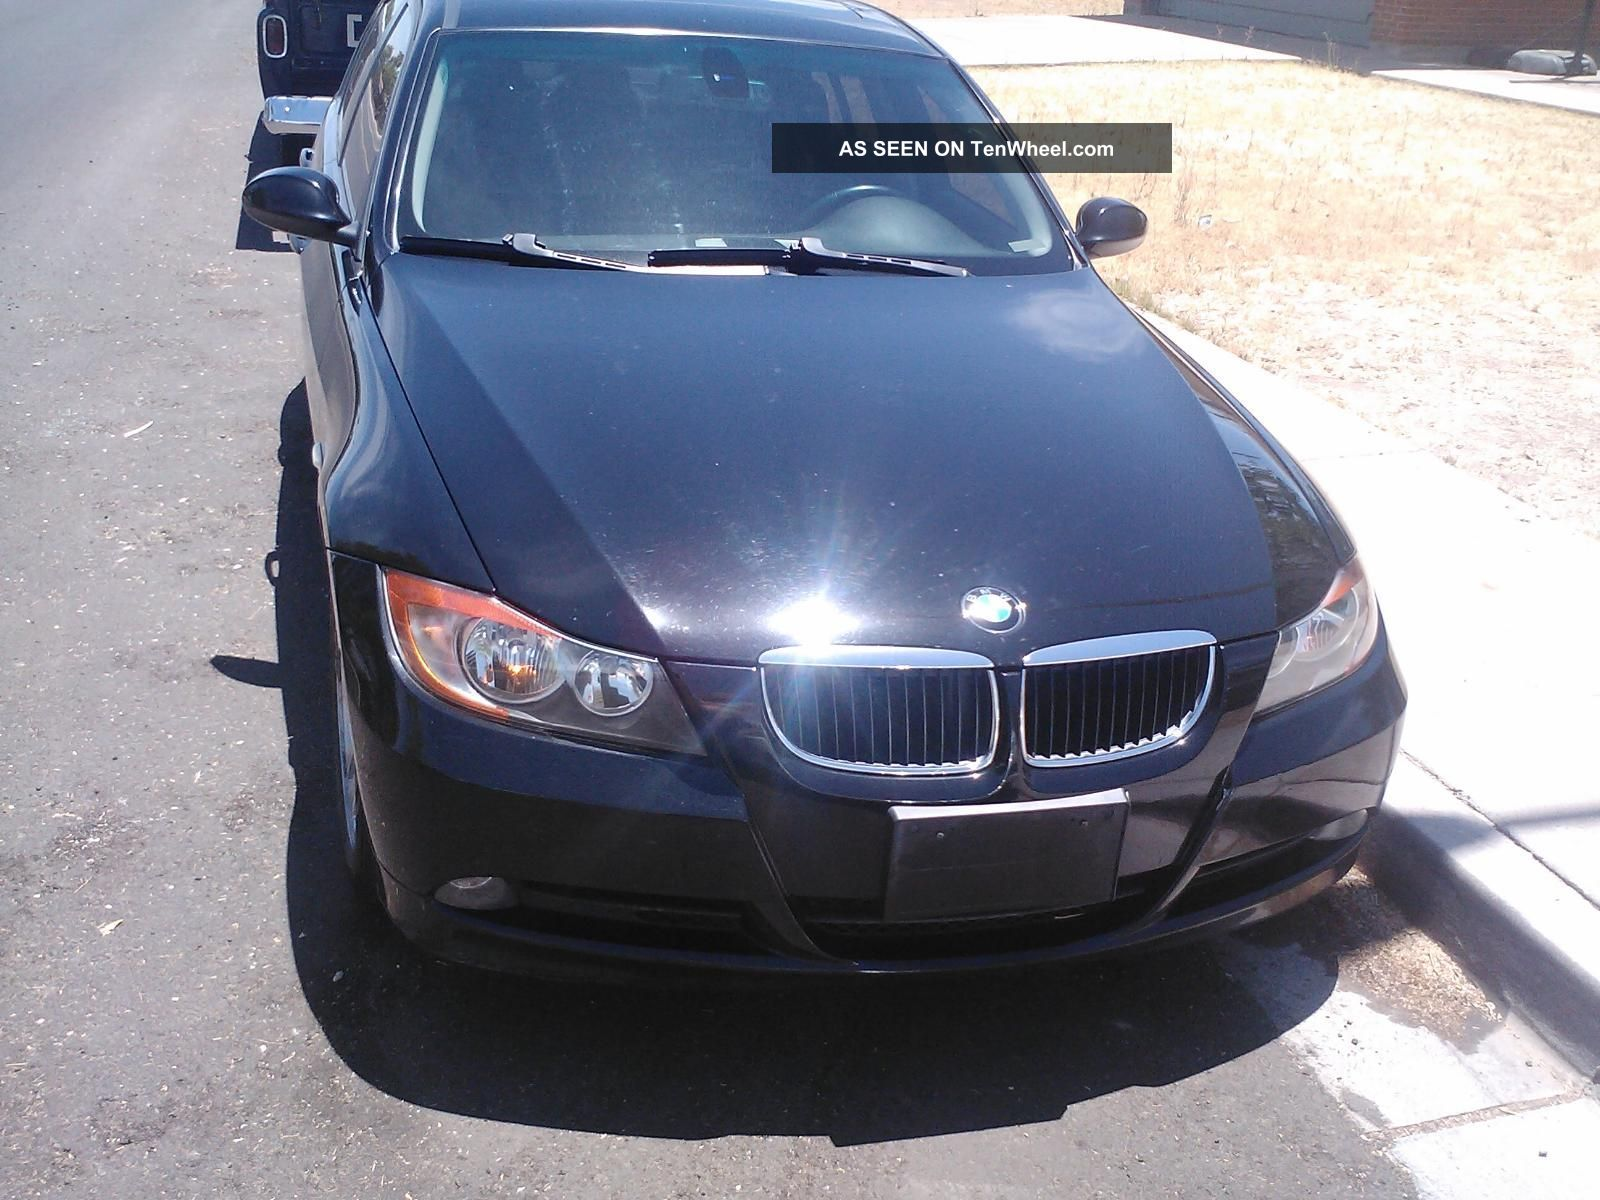 2007 328i Bmw 4 Door Sedan Black Inside And Out 3-Series photo